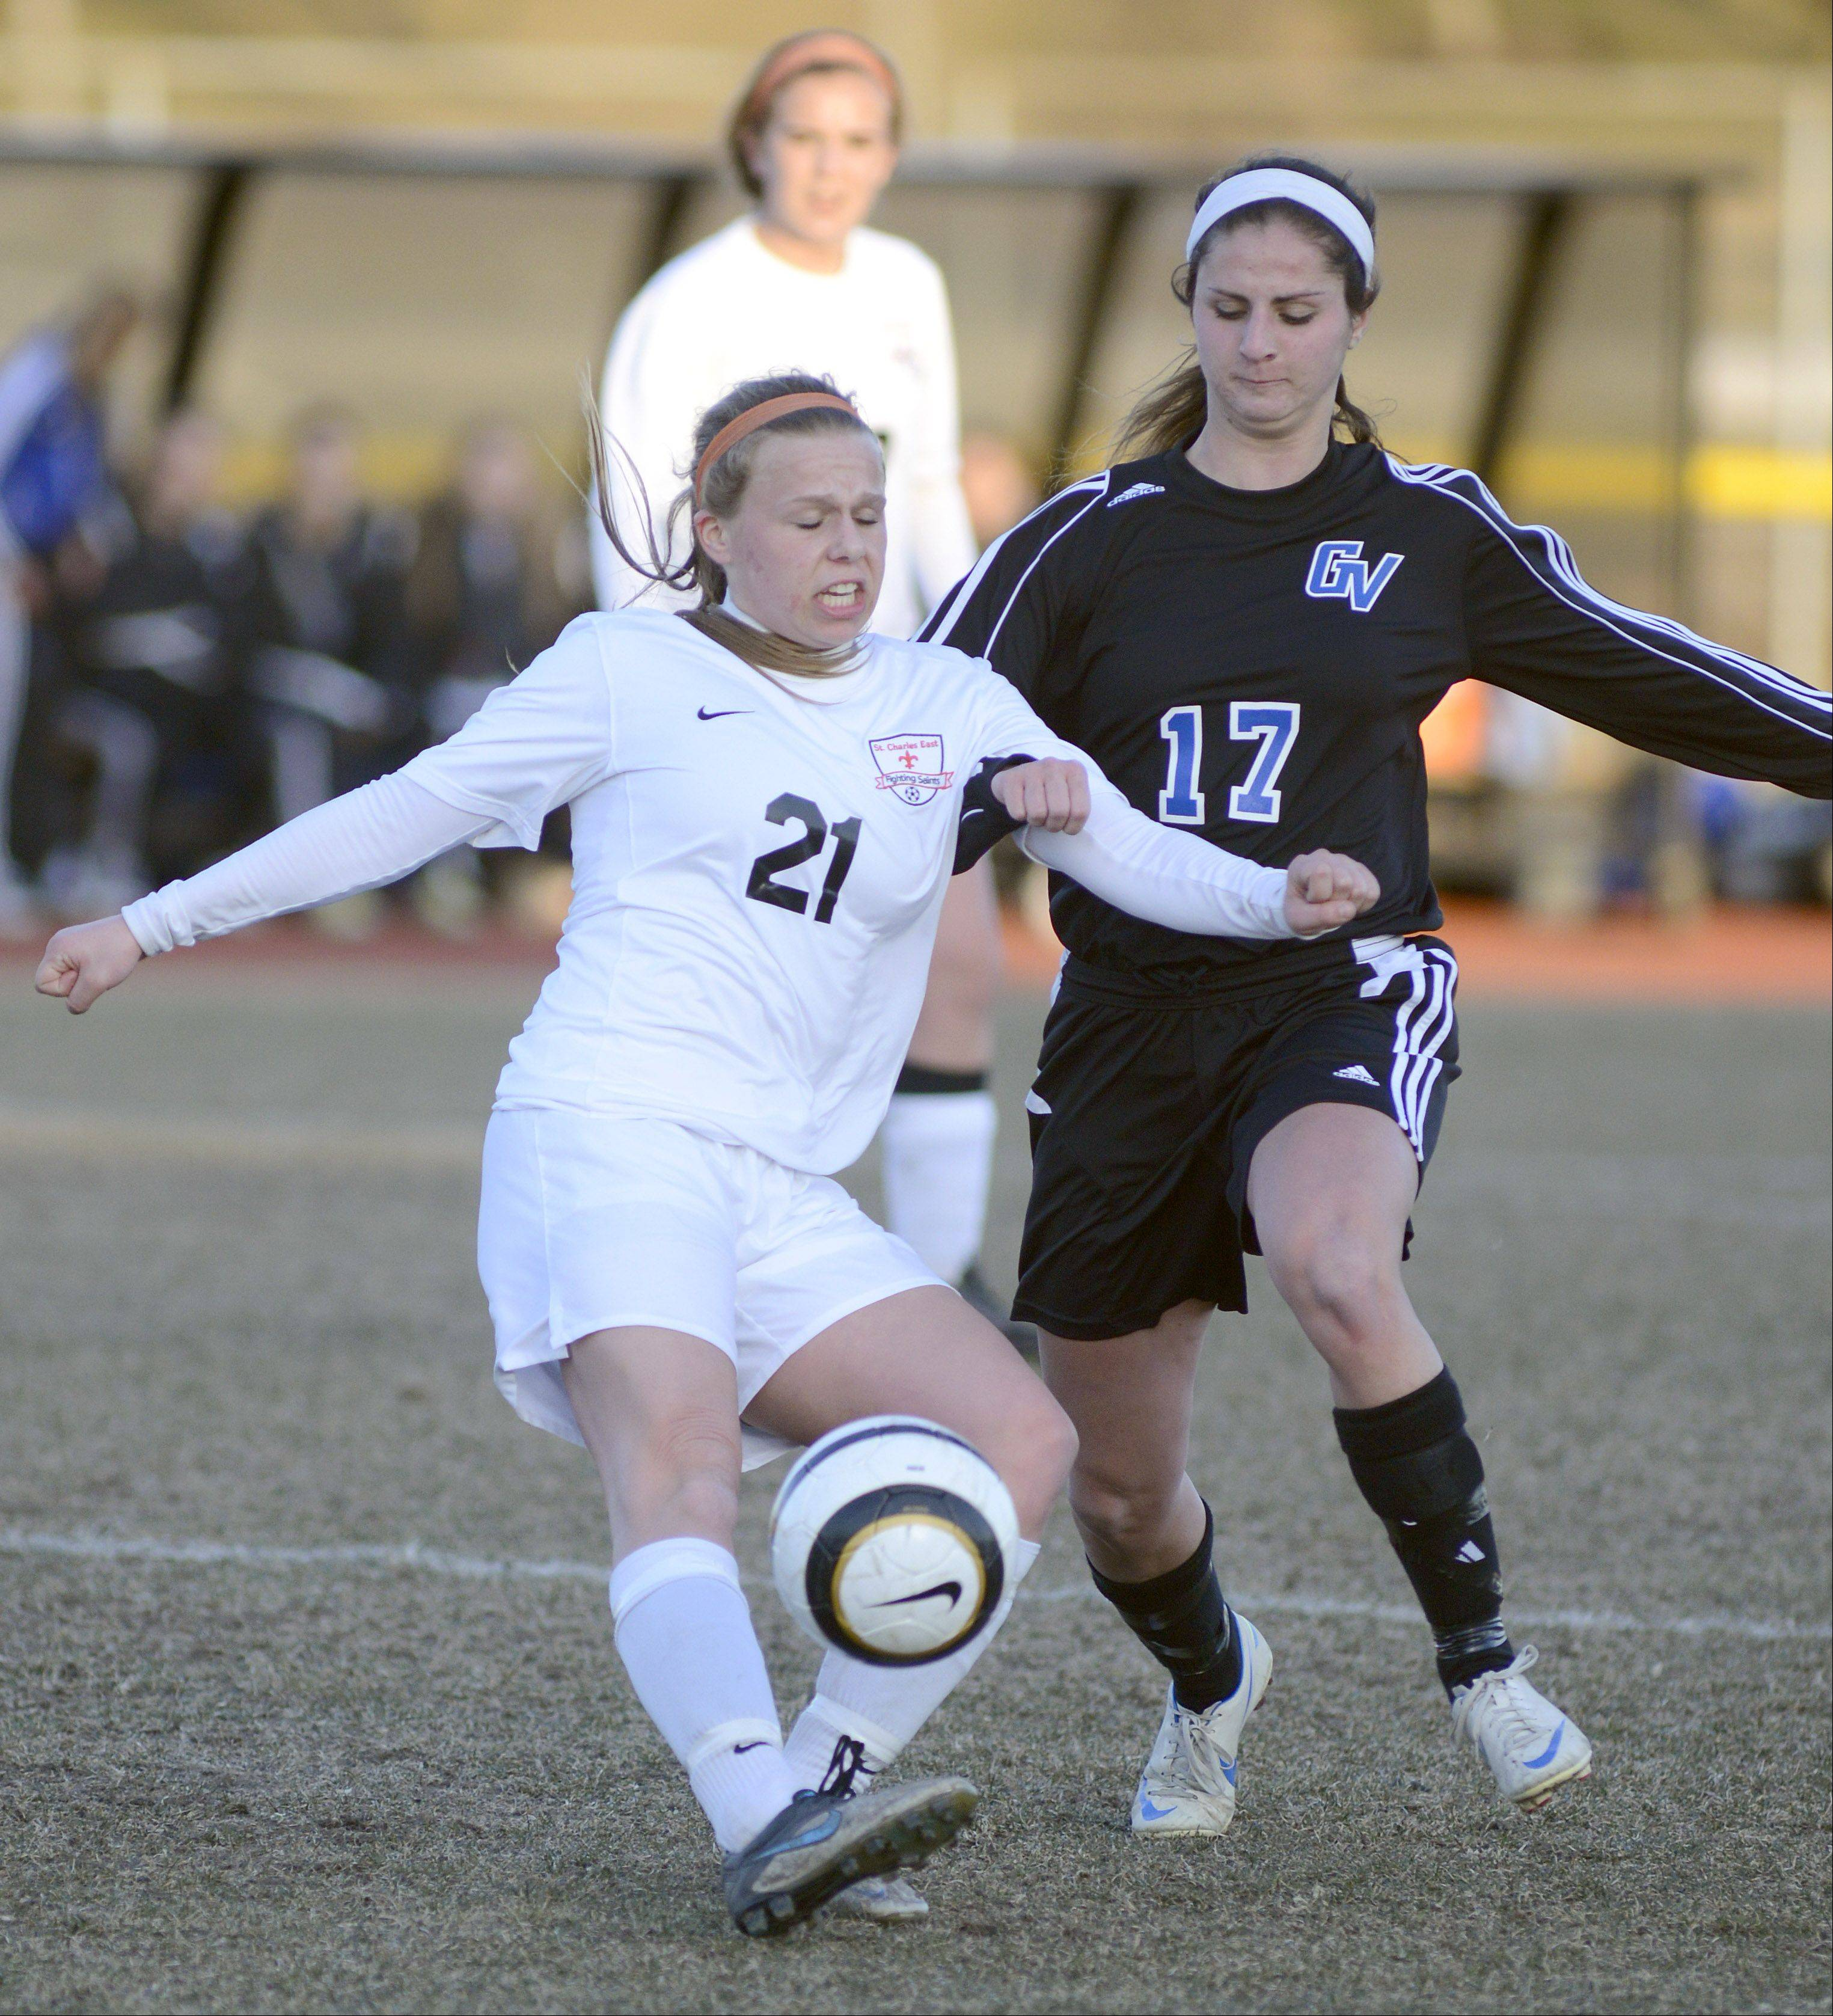 St. Charles East's Amanda Hilton and Geneva's Molly Axen battle for the ball in the first half on Tuesday, April 2.